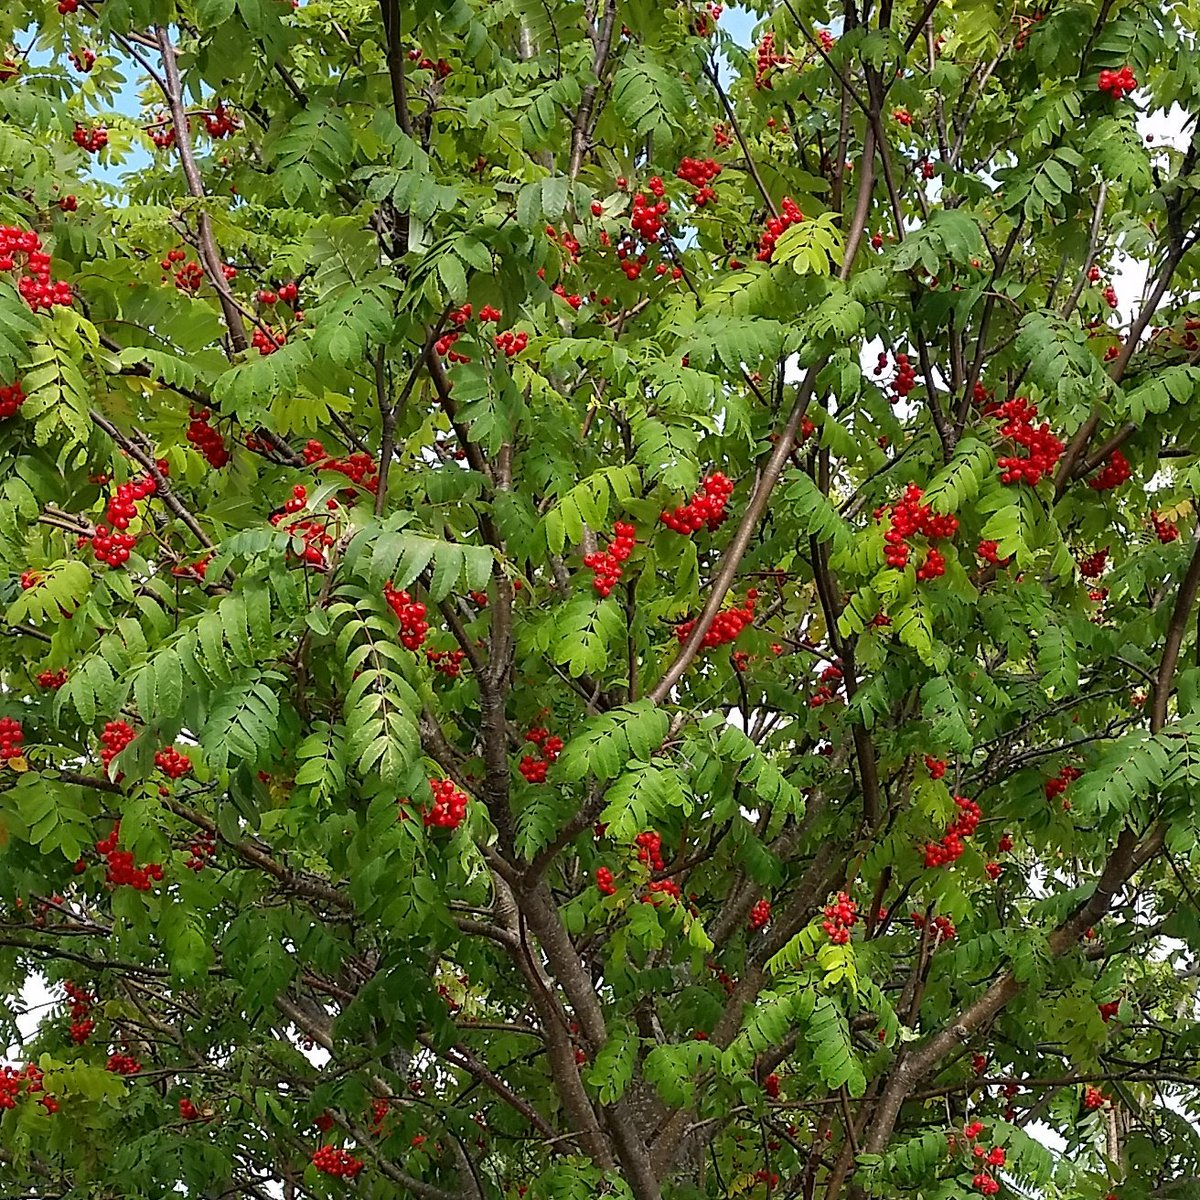 Lots of #berries on this #RowanTree. Does this mean we&#39;re in for a harsh #winter?? <br>http://pic.twitter.com/VsnaGxaKs0